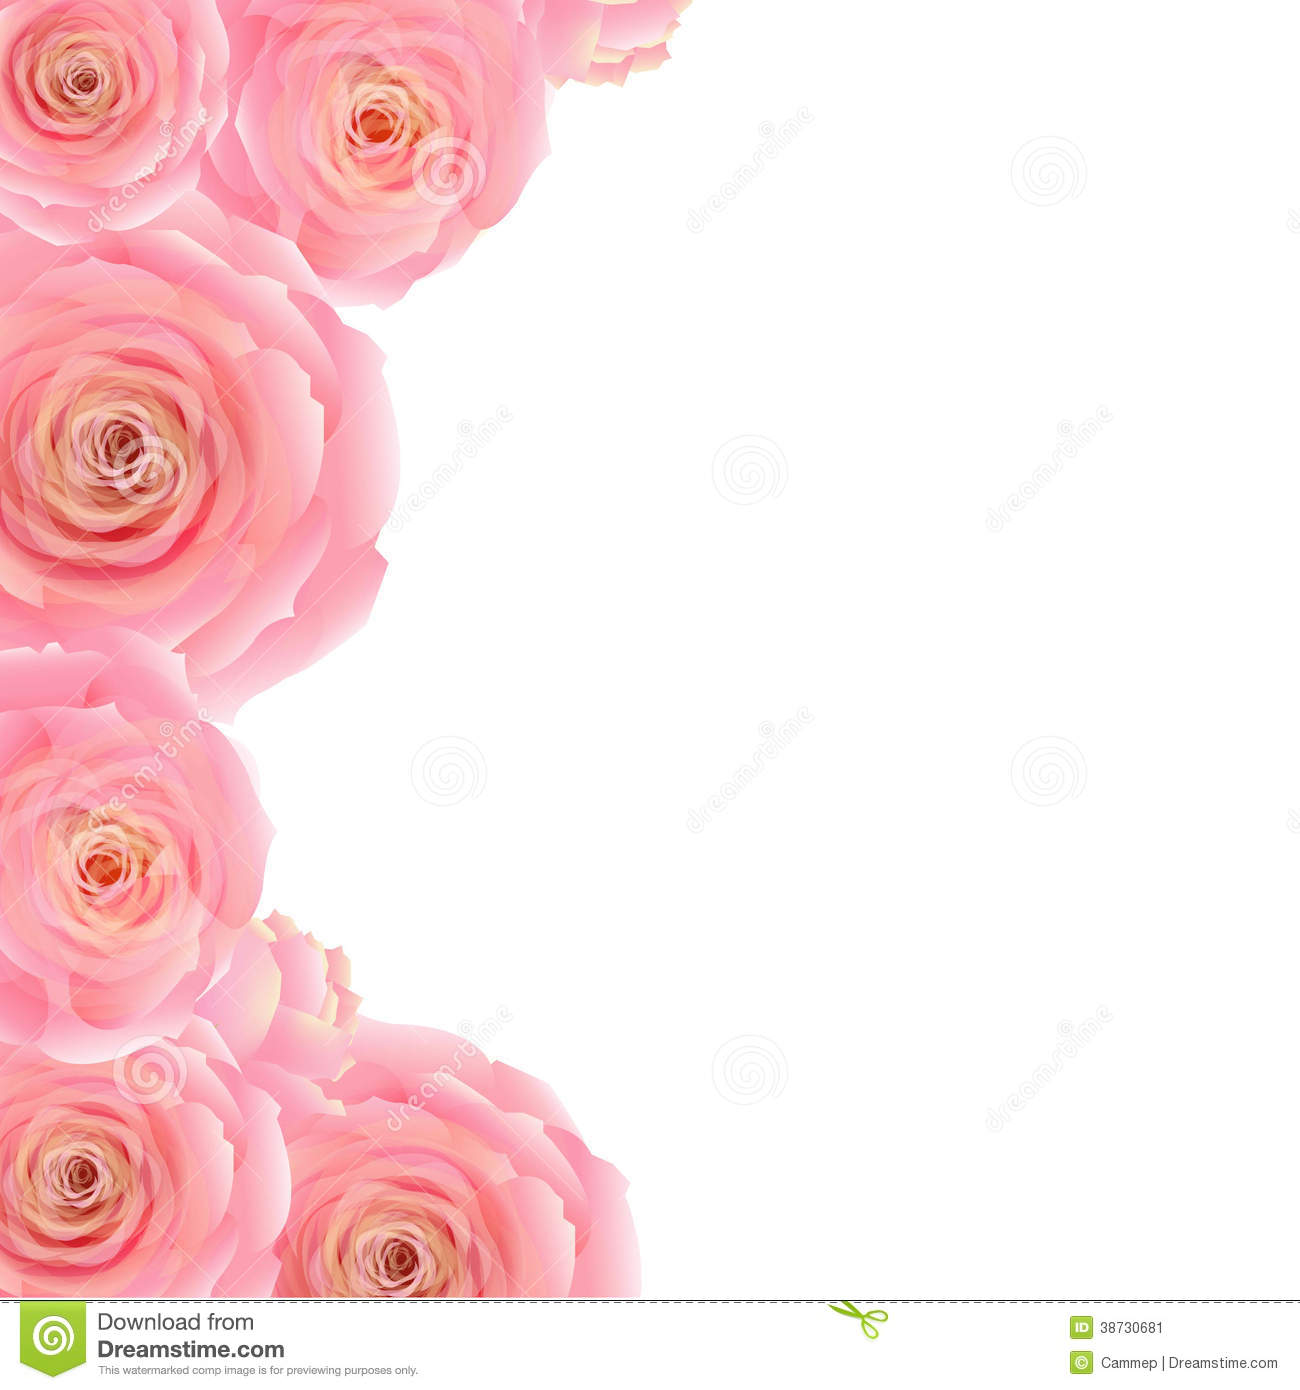 Pink Rose Border, With Gradient Mesh, Vector Illustration.